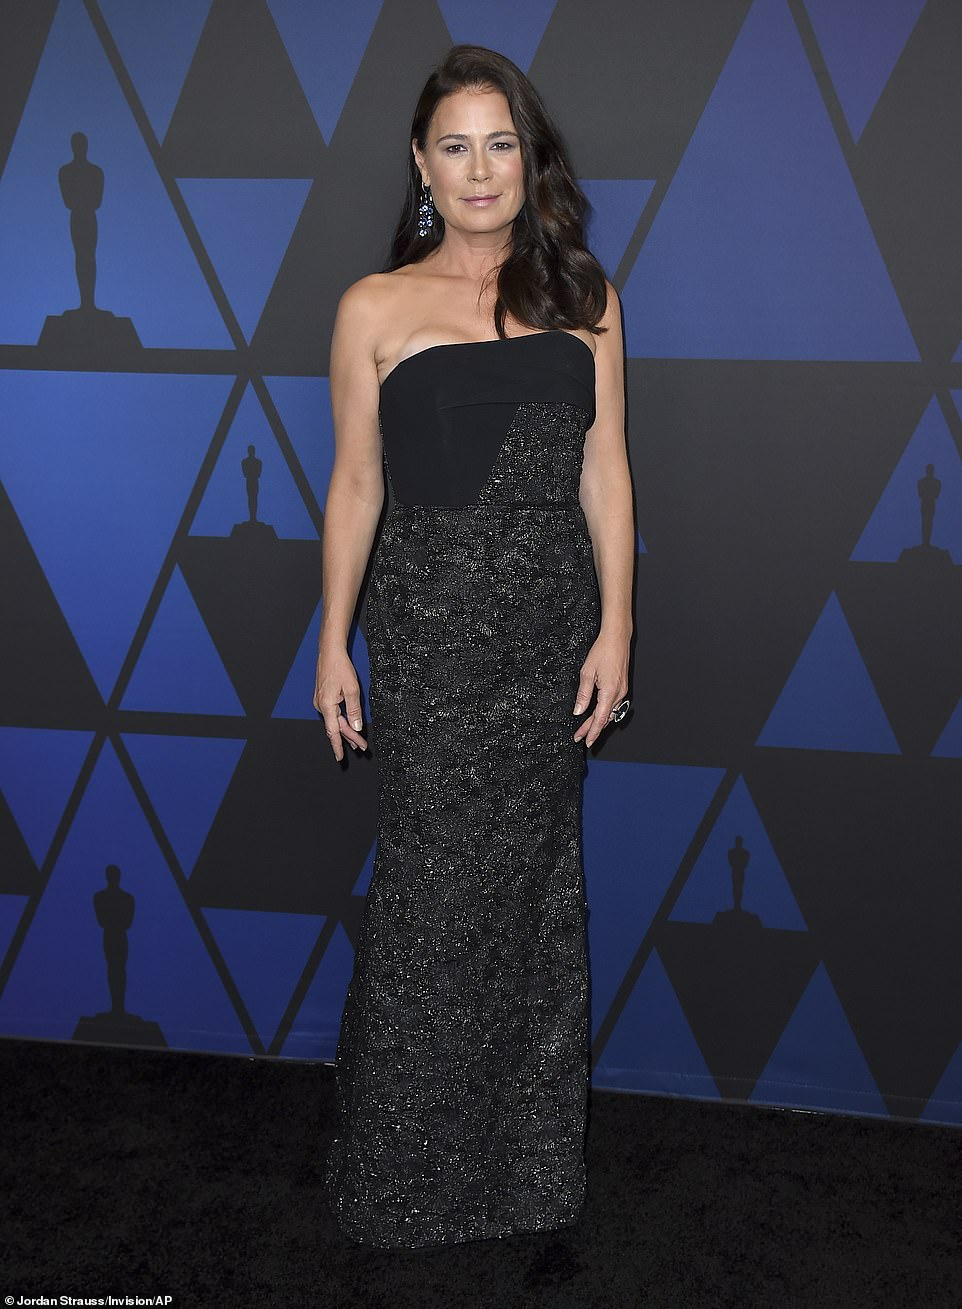 VRAM Jewelry Chrona Sapphire Earrings Maura Tierney Governor's Ball